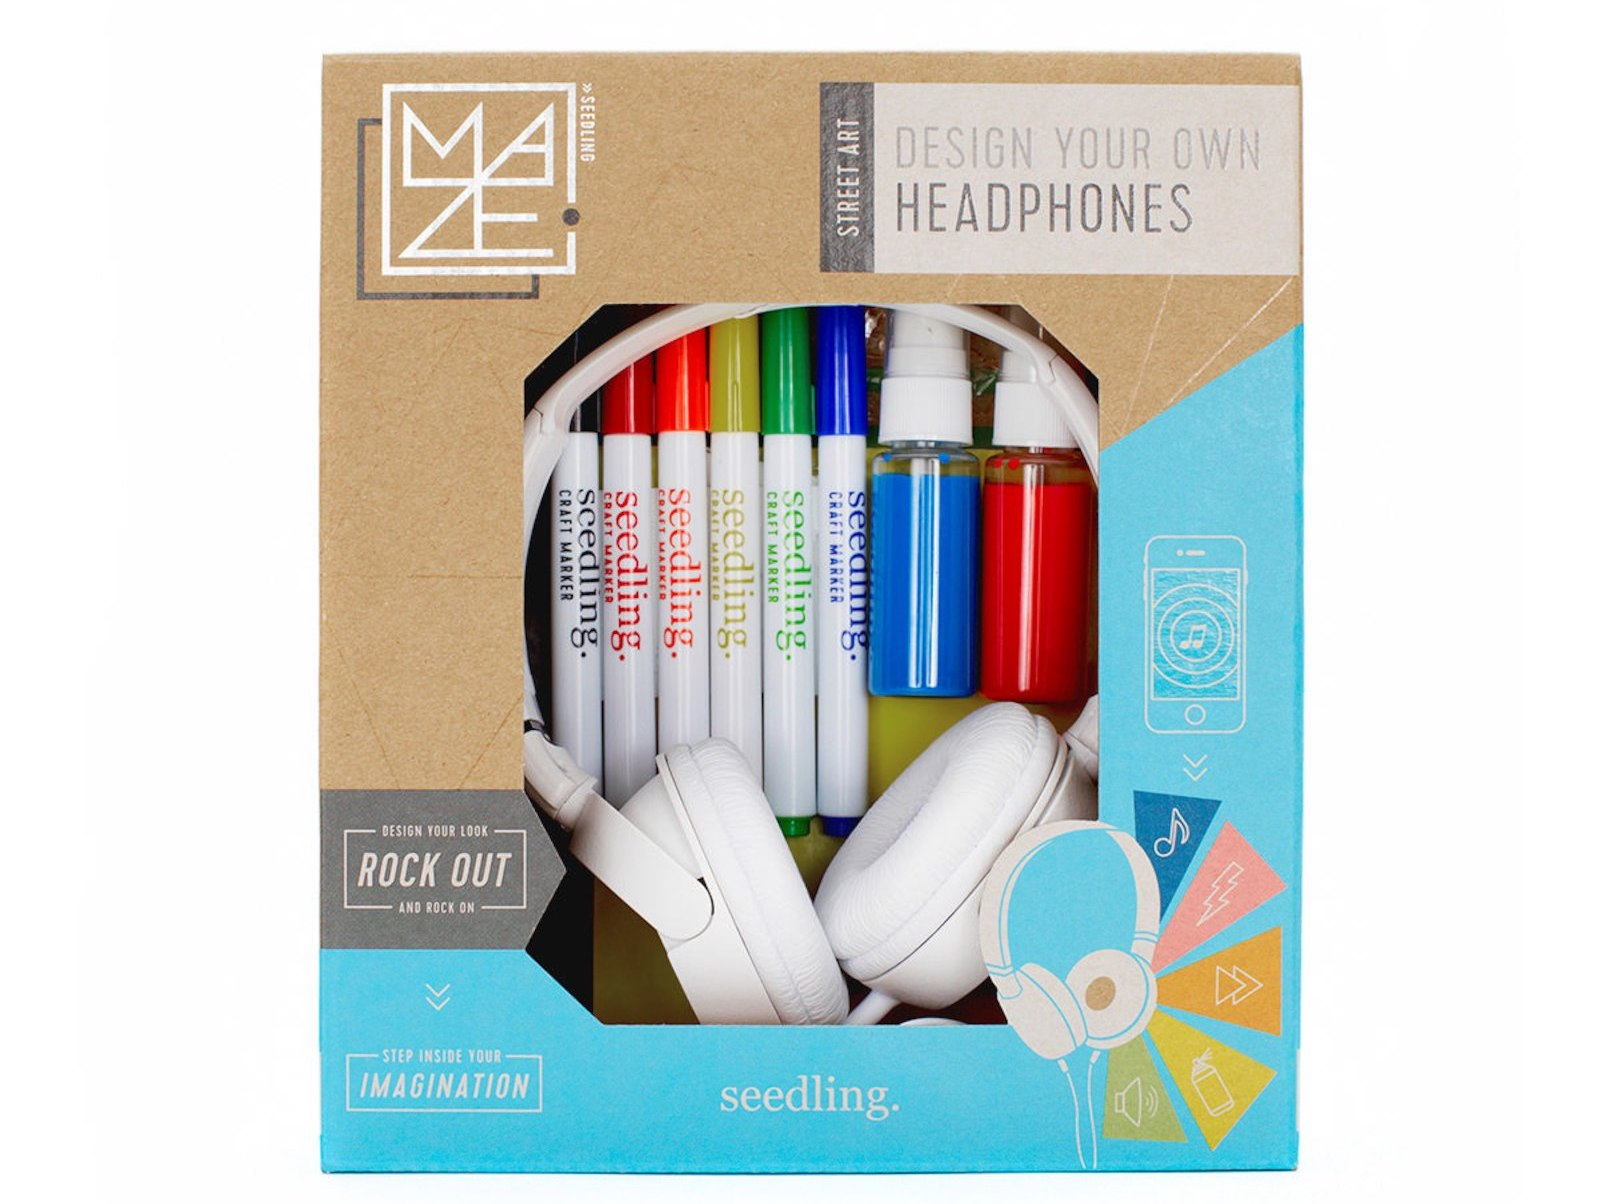 Seedling design your own headphone kit: One of the gifts you can buy to make the holiday of a US child in need or in foster care through Daymaker